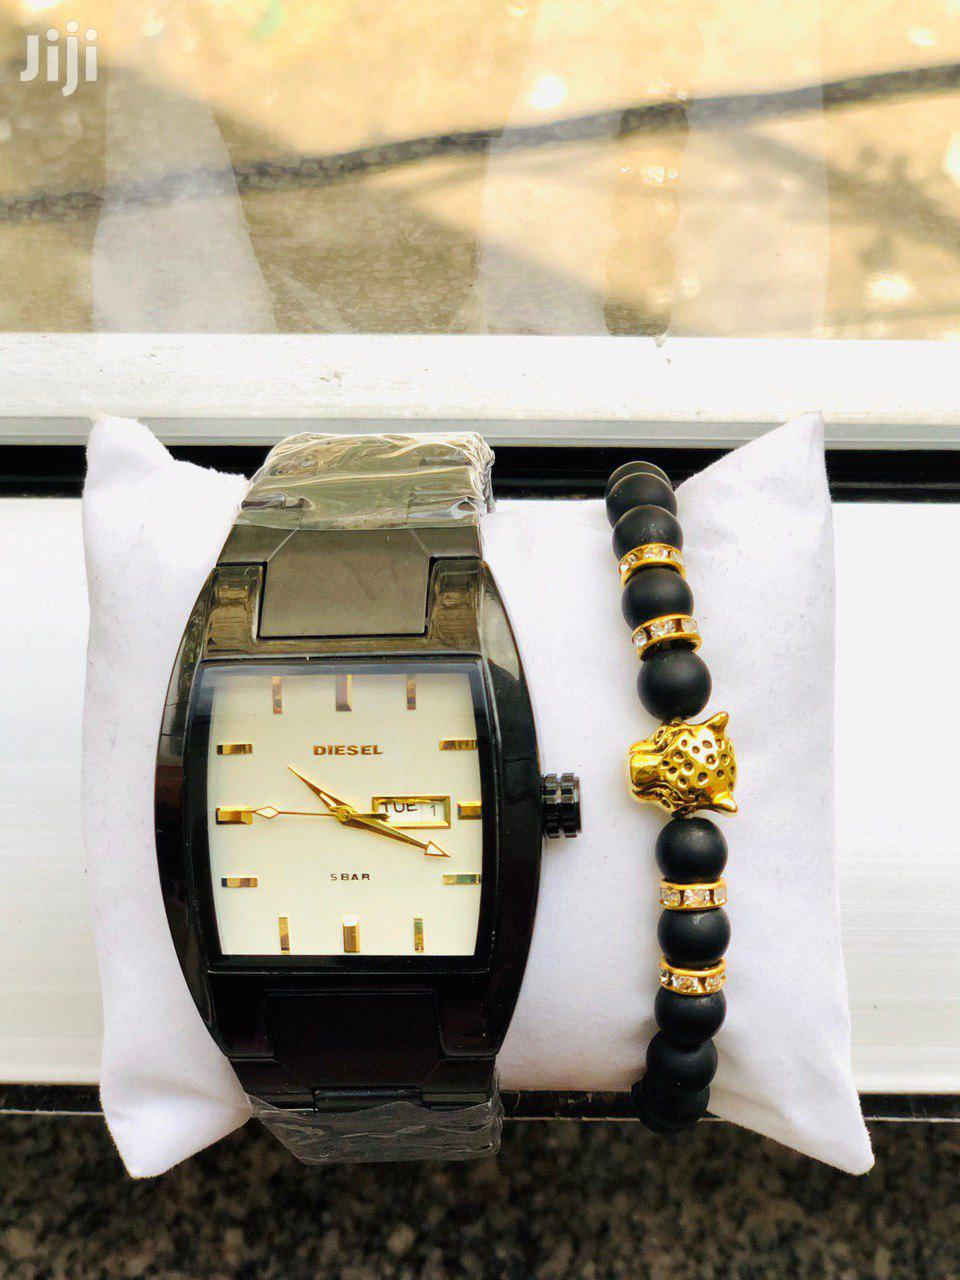 DIESEL WATCHS + Bracelets | Watches for sale in Bole, Addis Ababa, Ethiopia